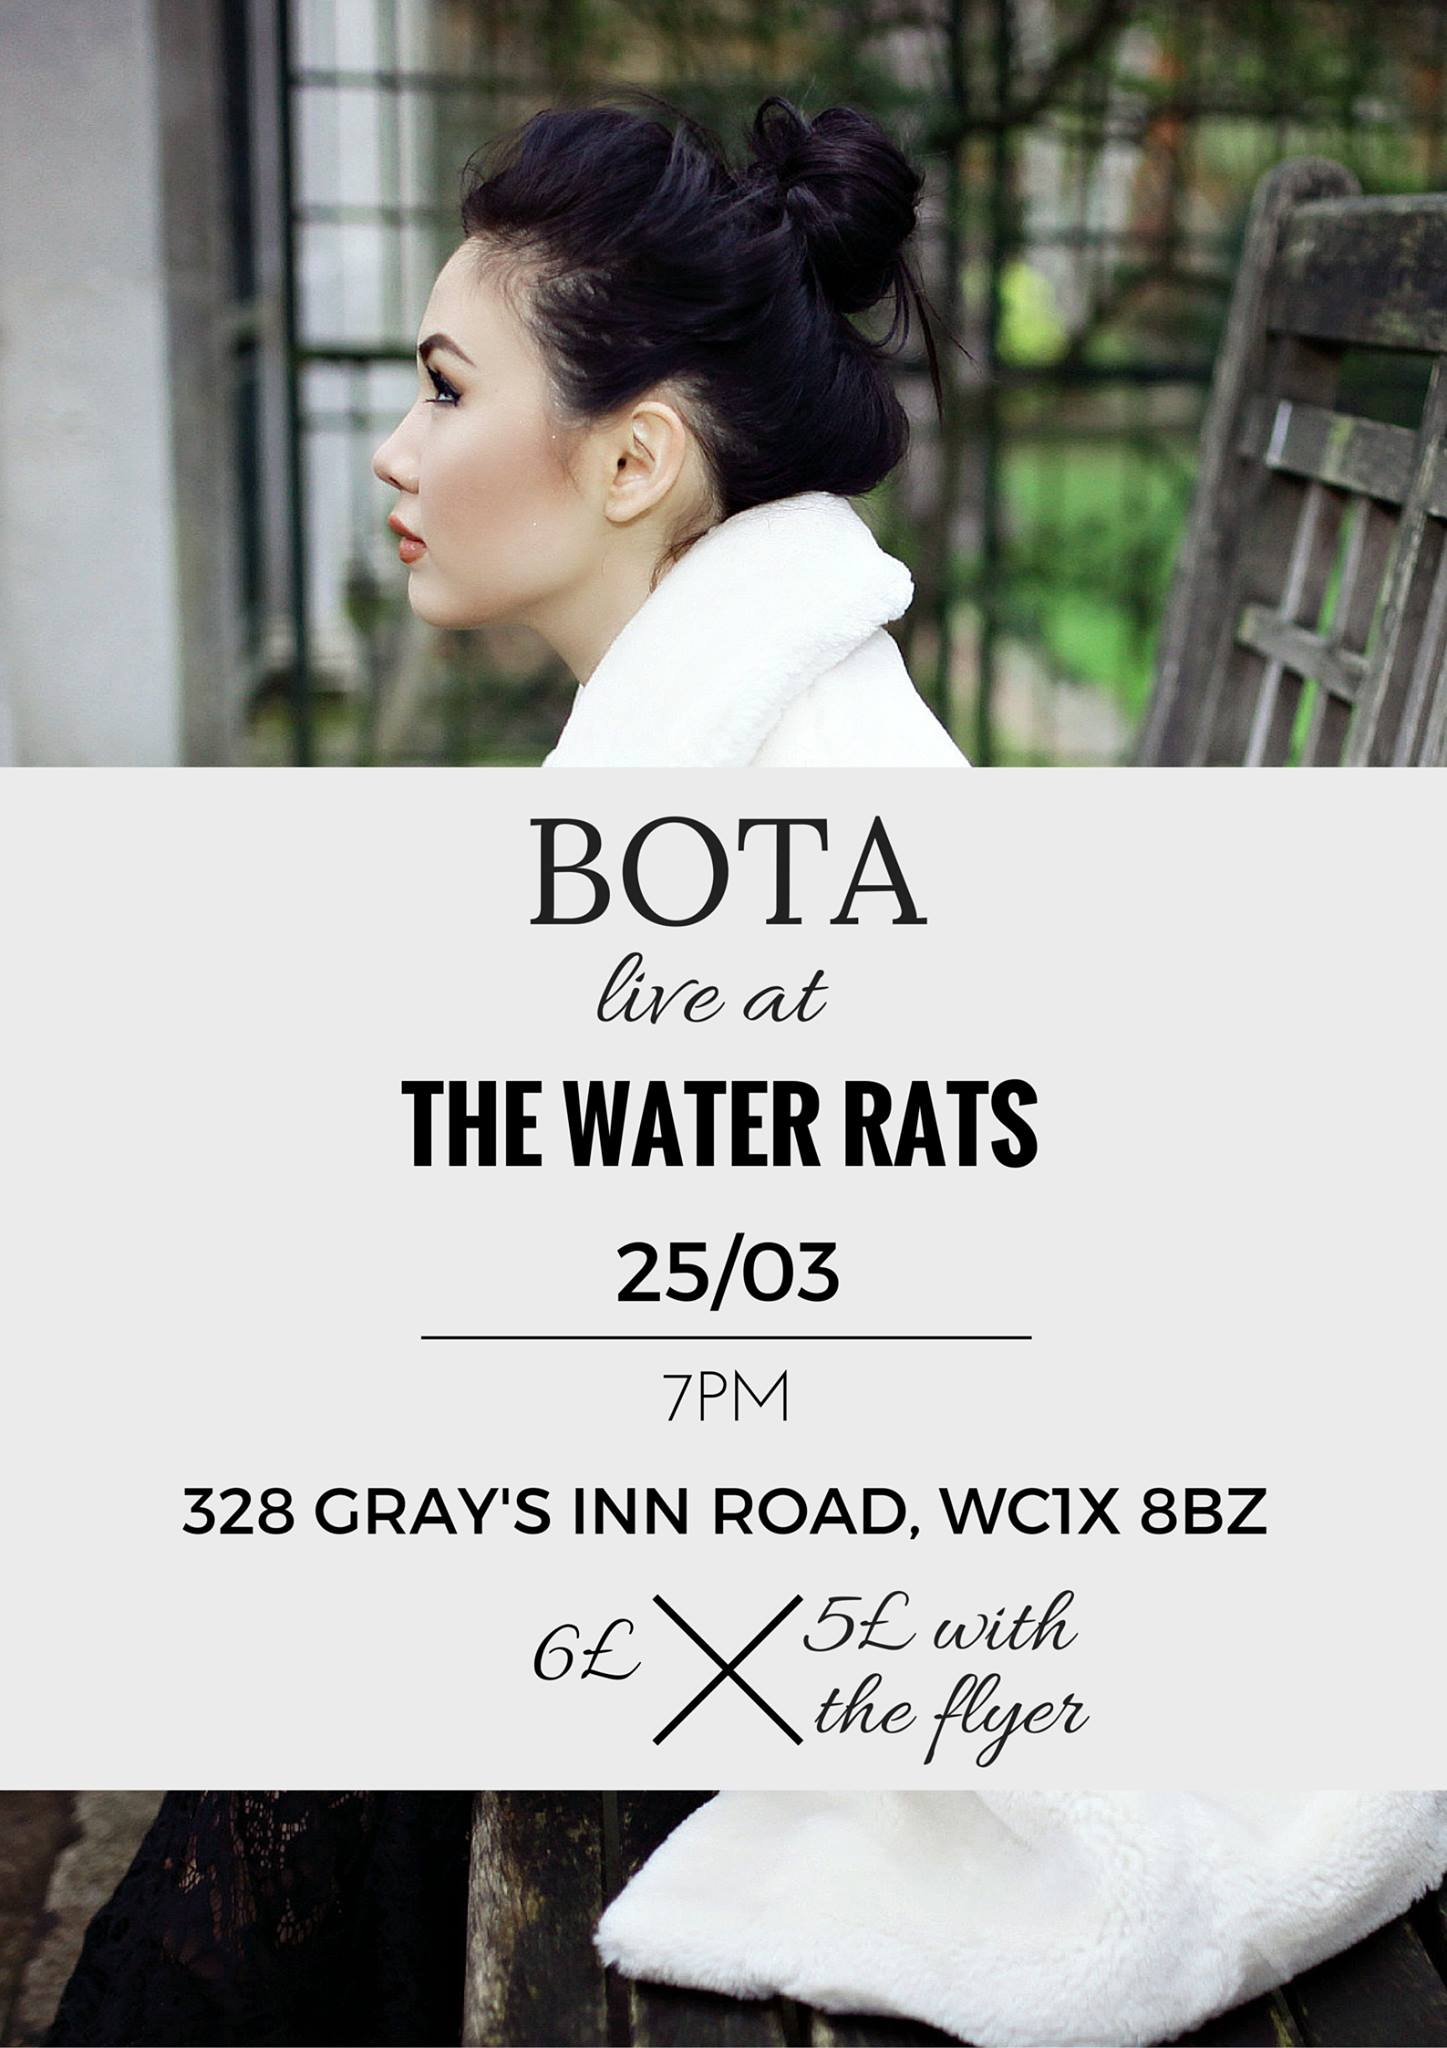 Waterrats BOTA